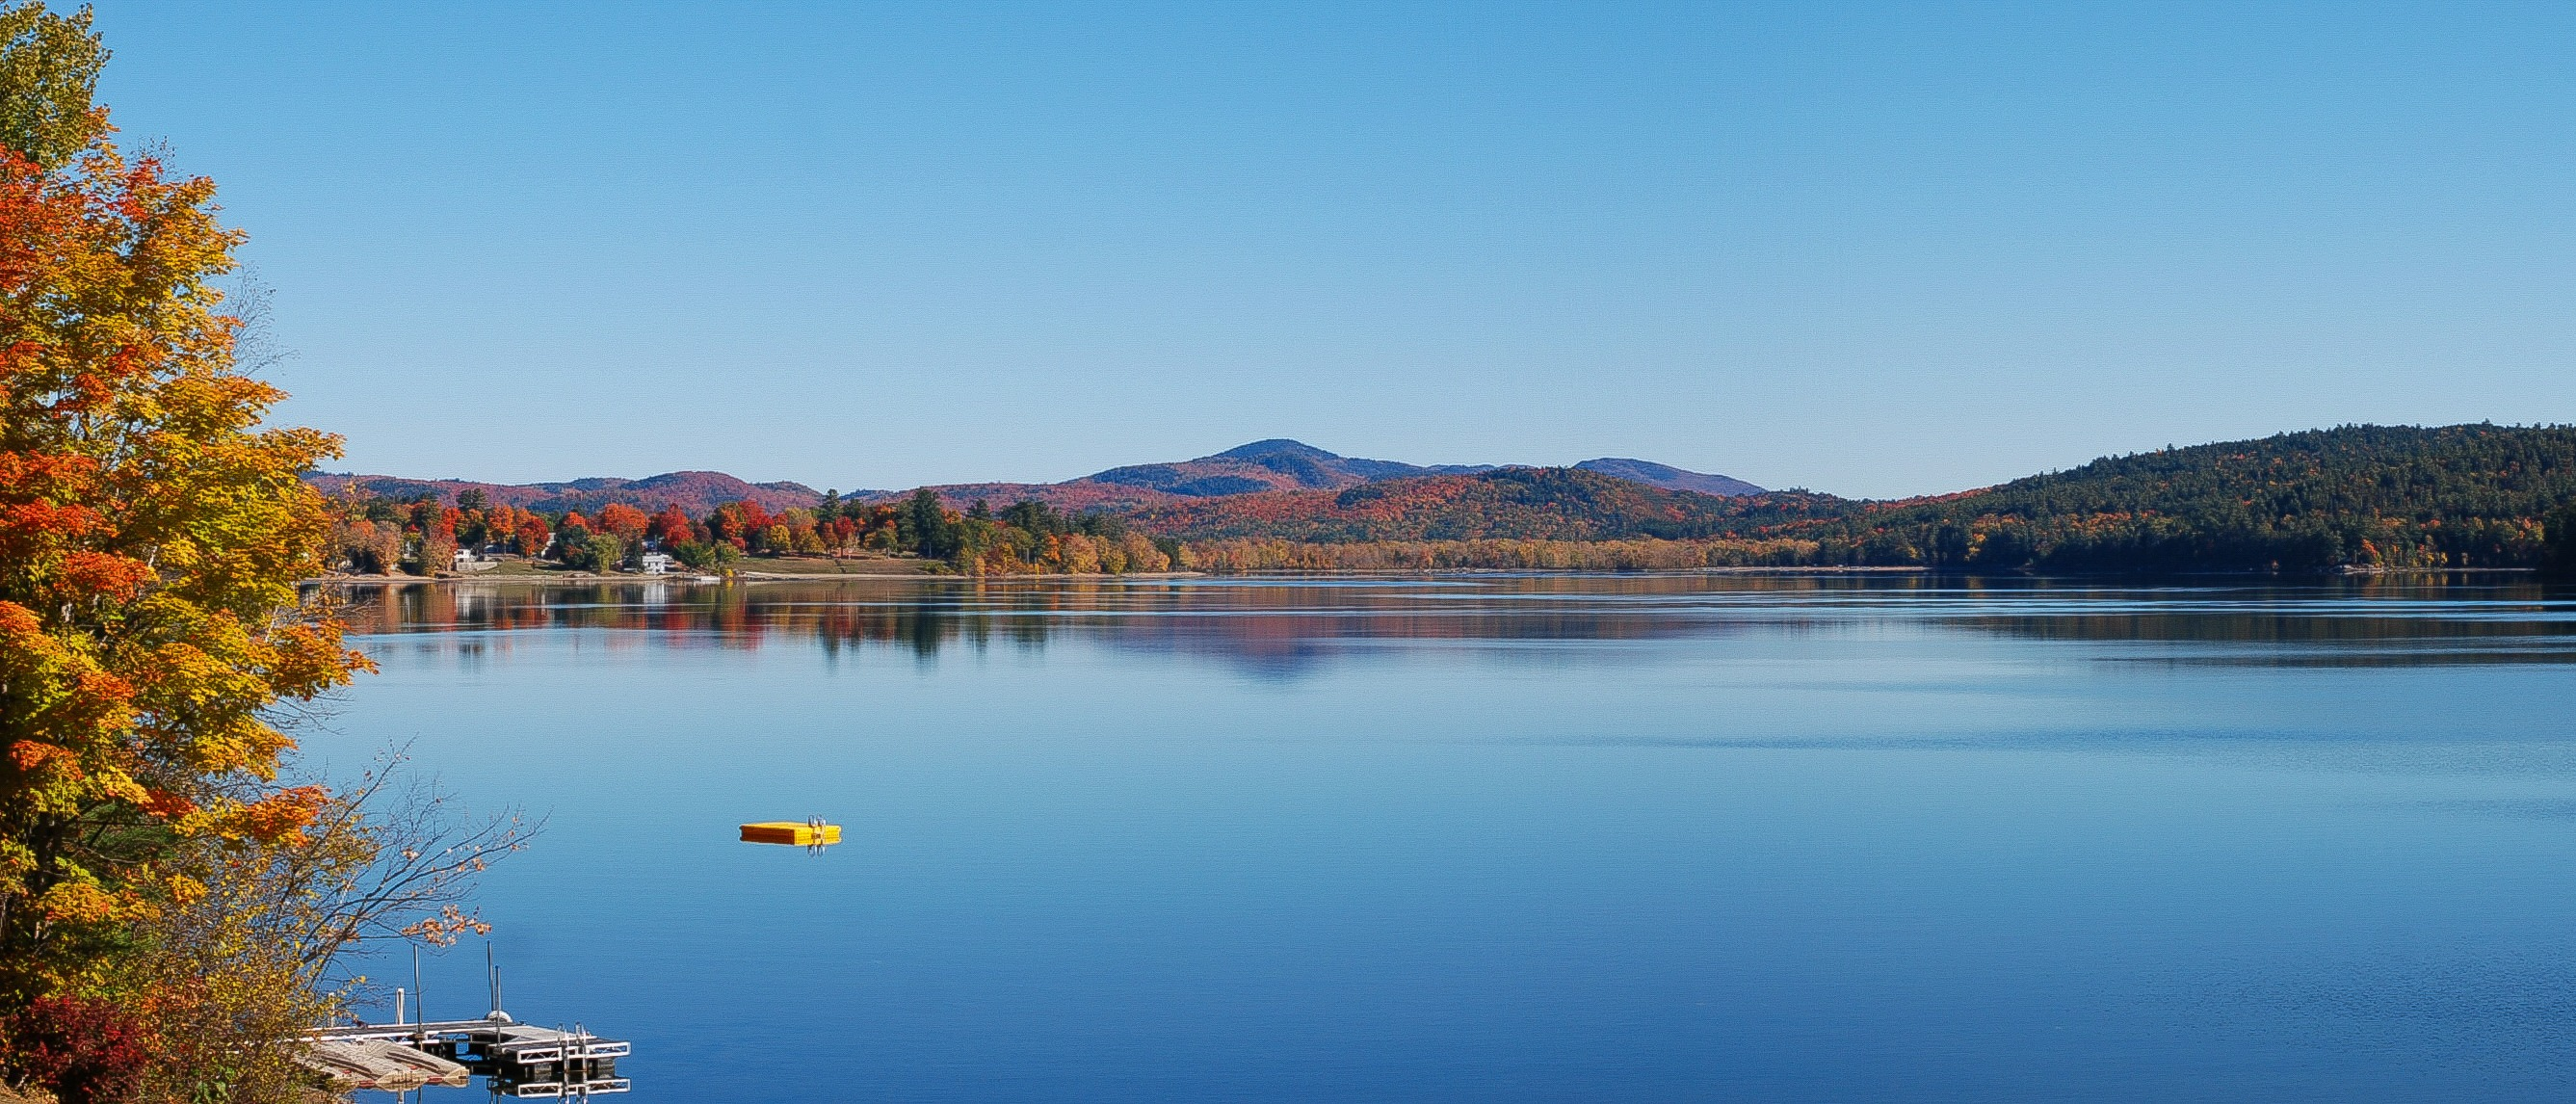 Schroon Lake beach across the water